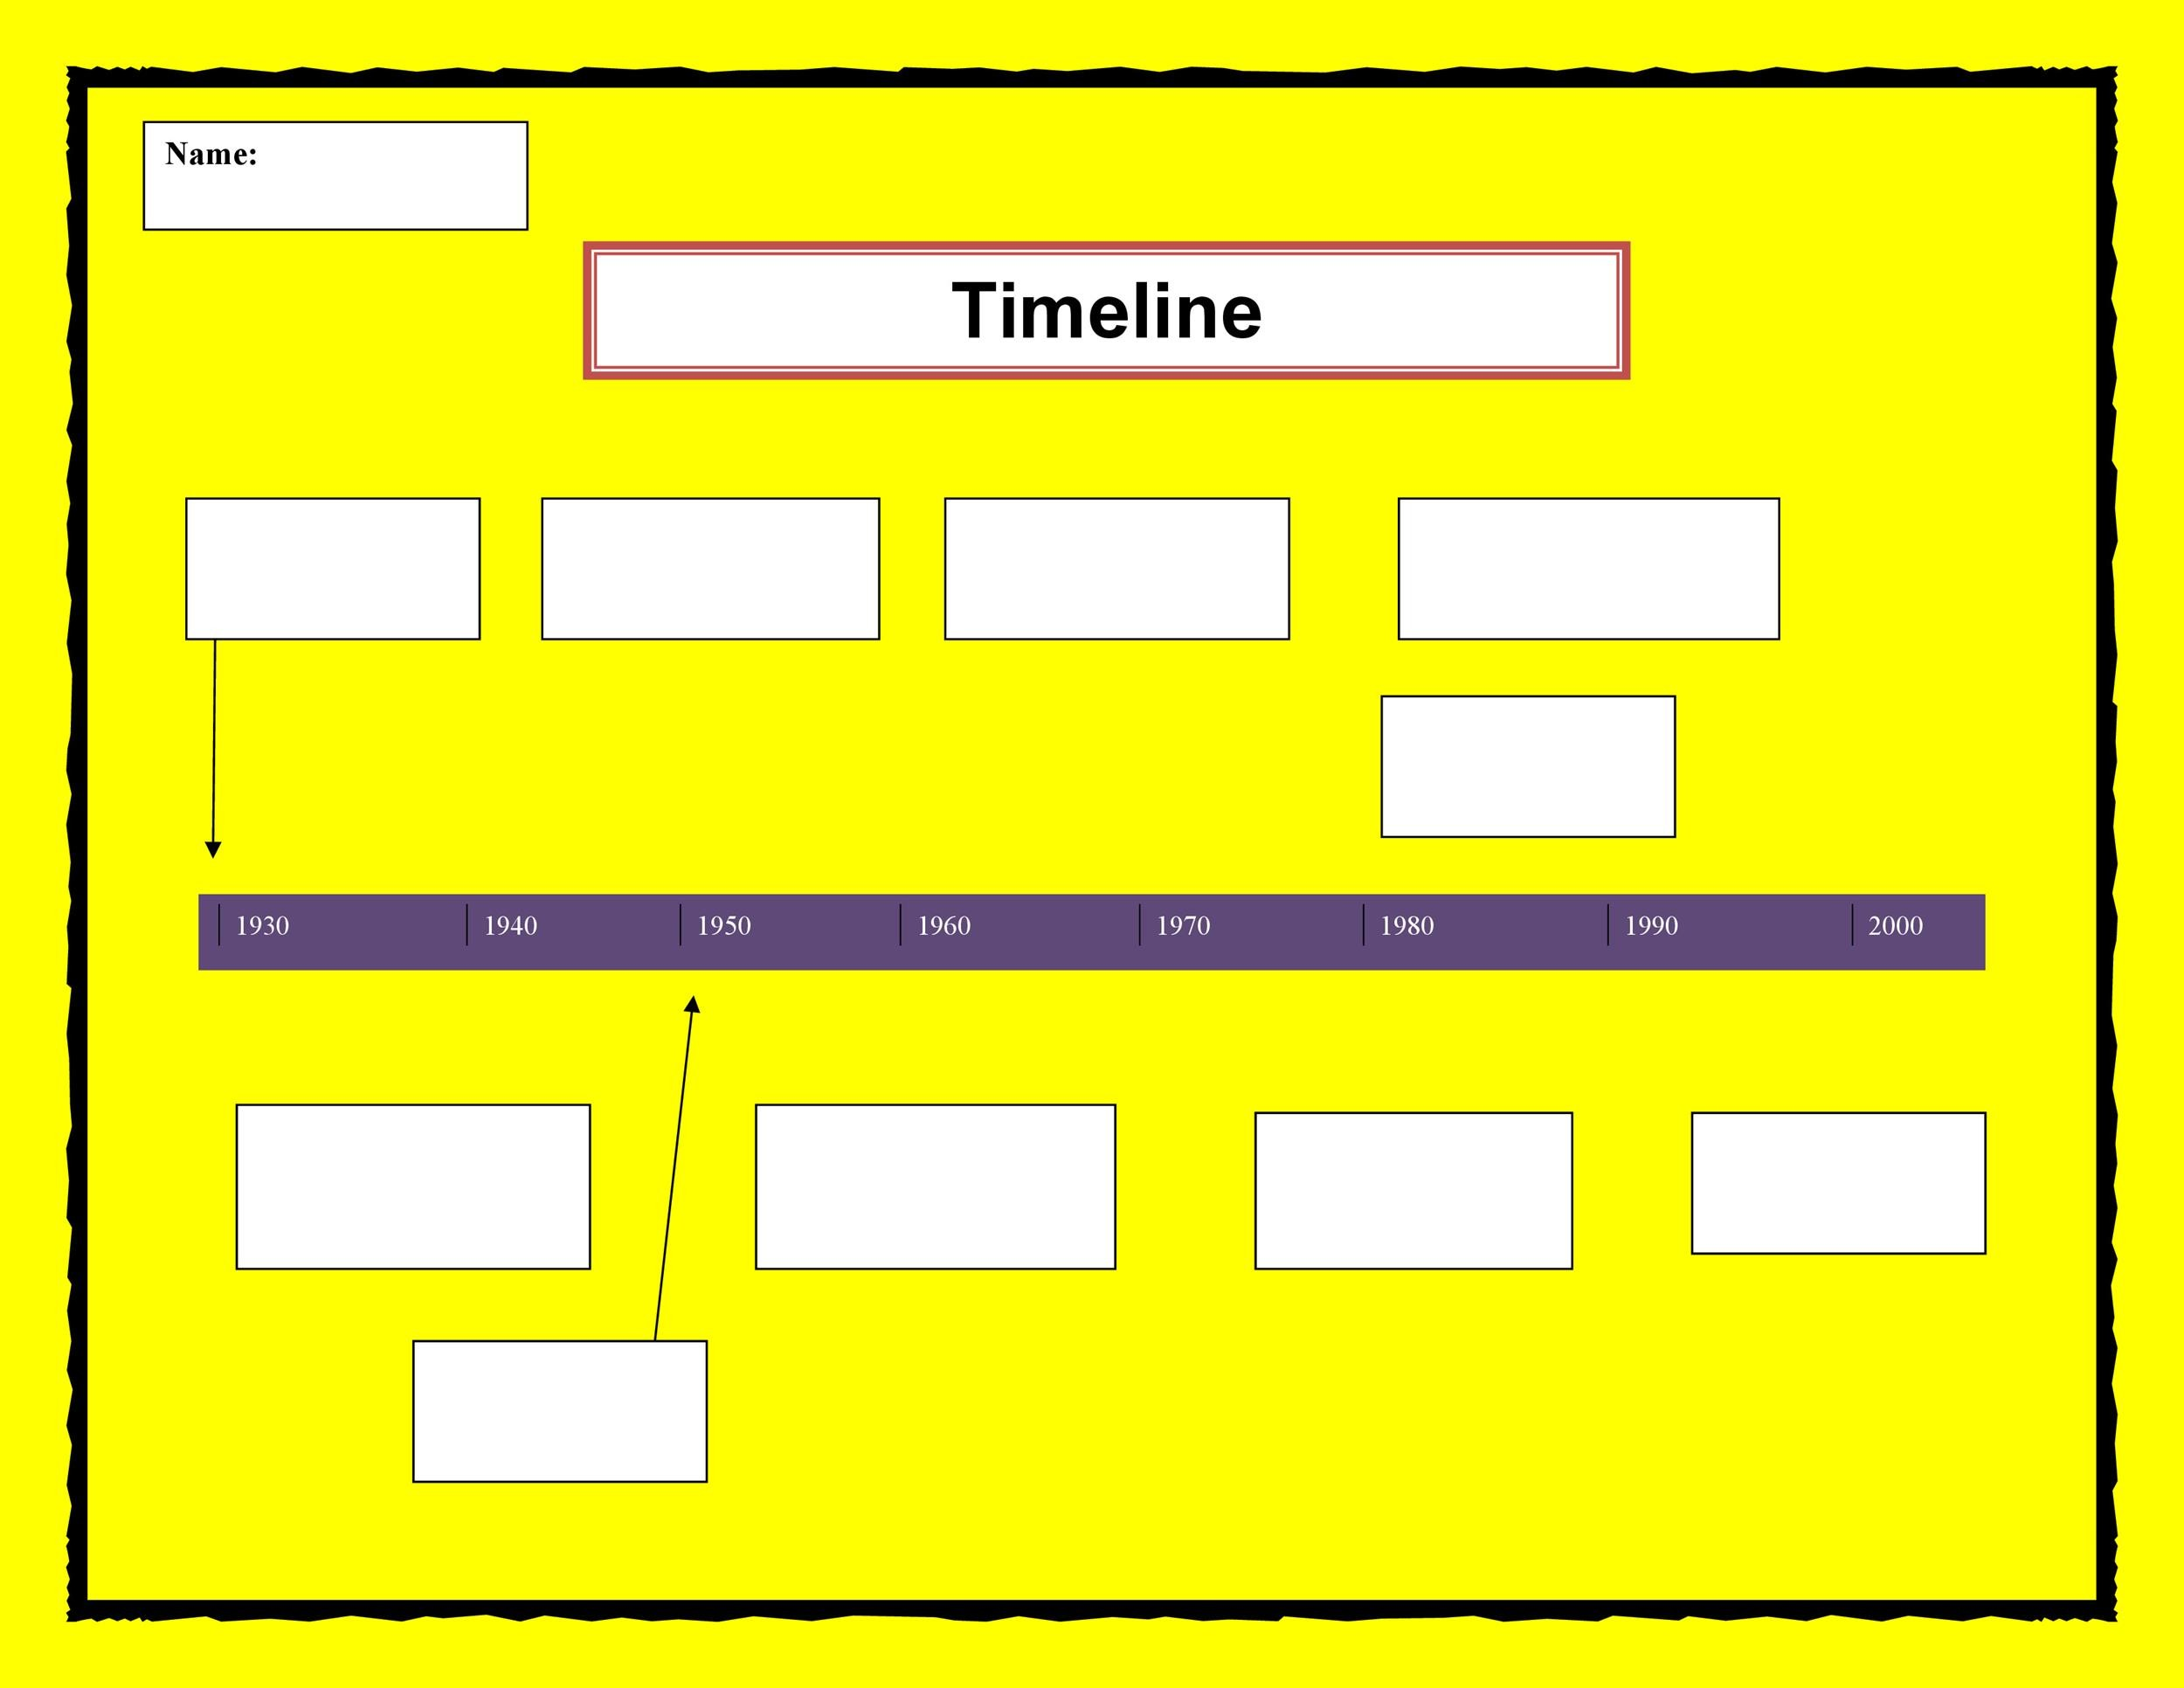 30+ Timeline Templates (Excel, Power Point, Word) - Template Lab - template timeline excel